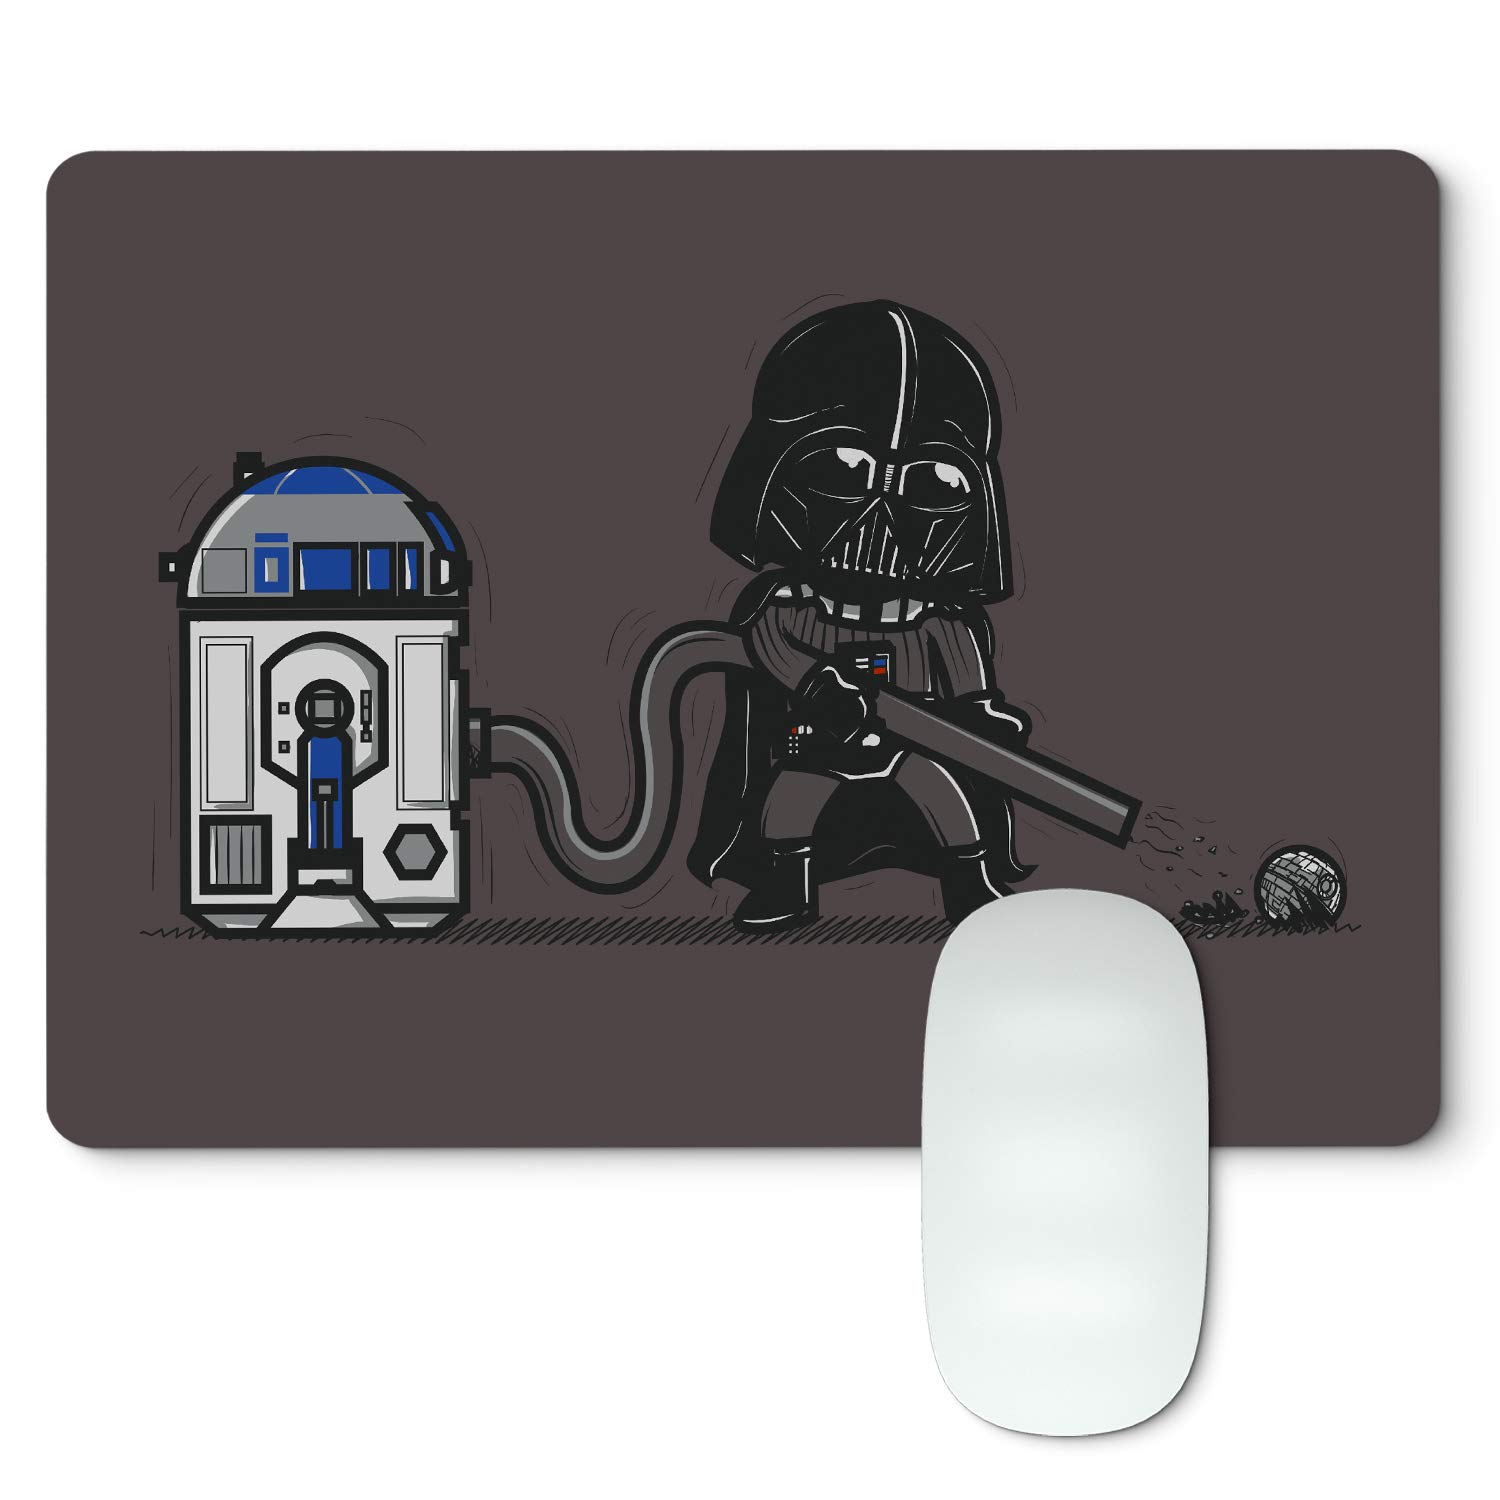 Tappetino per Mouse Star Wars Clone Wars R2D2  Aspirapolvere Be8eight